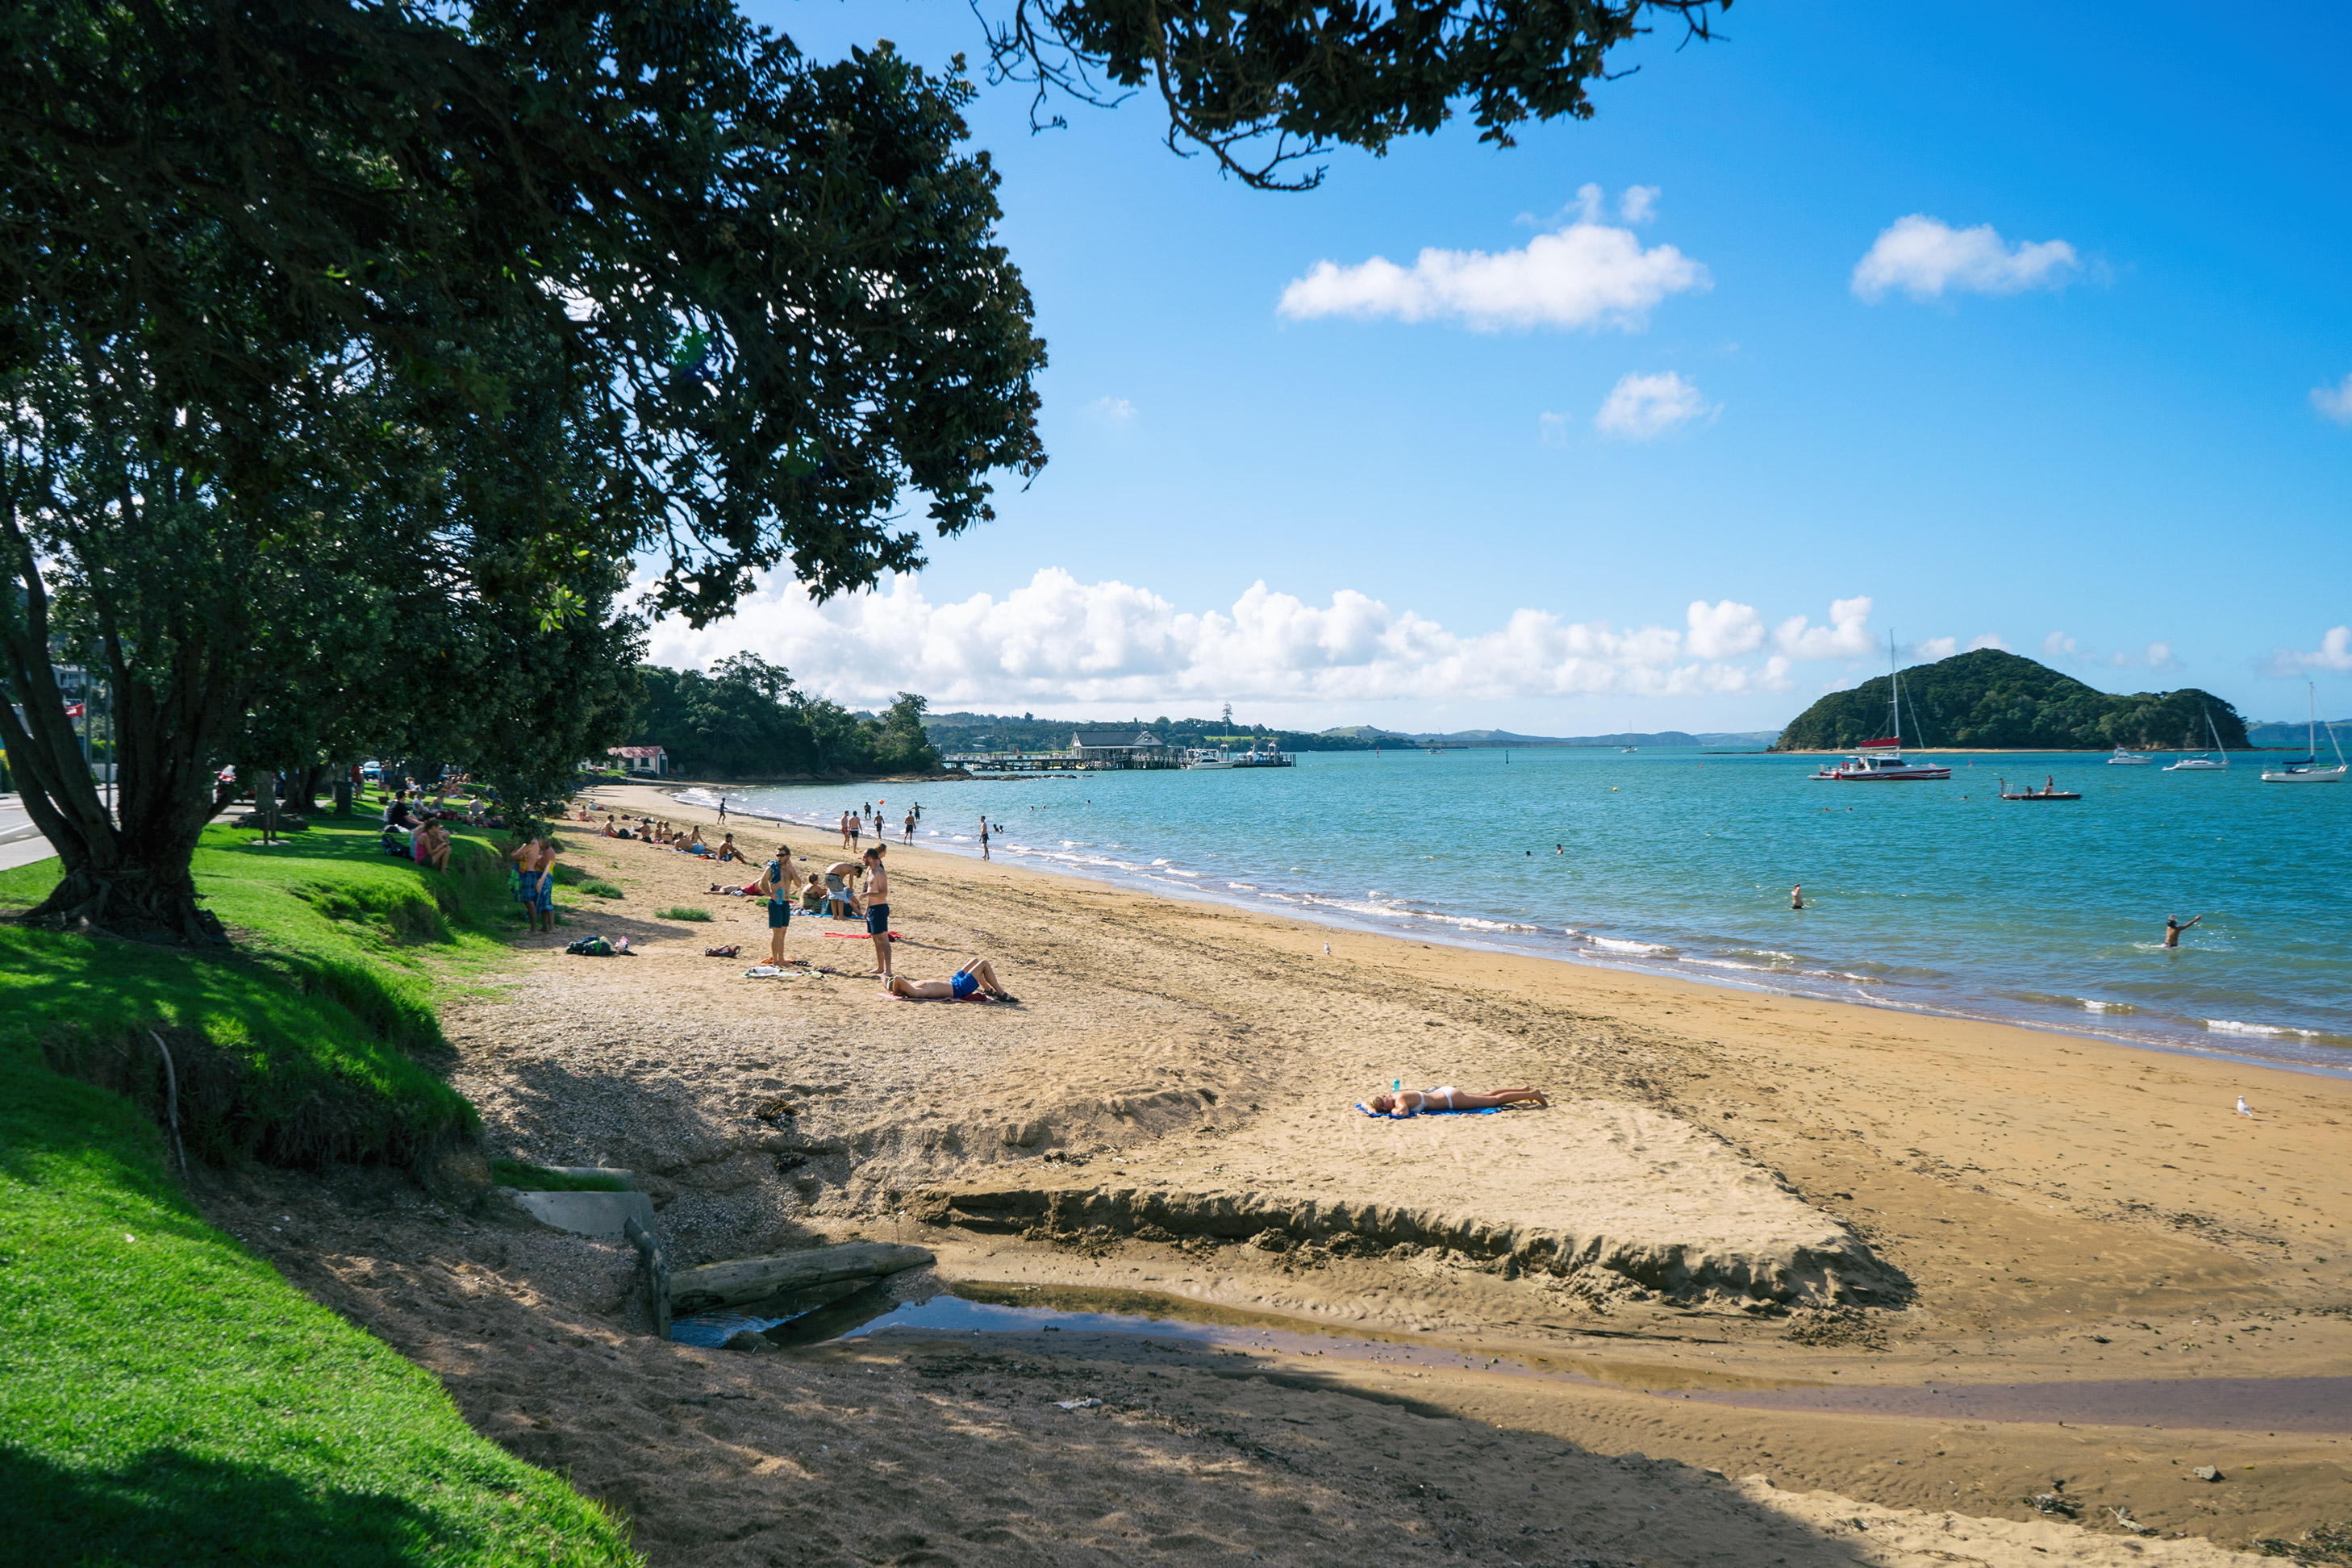 Bay of Islands Paihia Beach